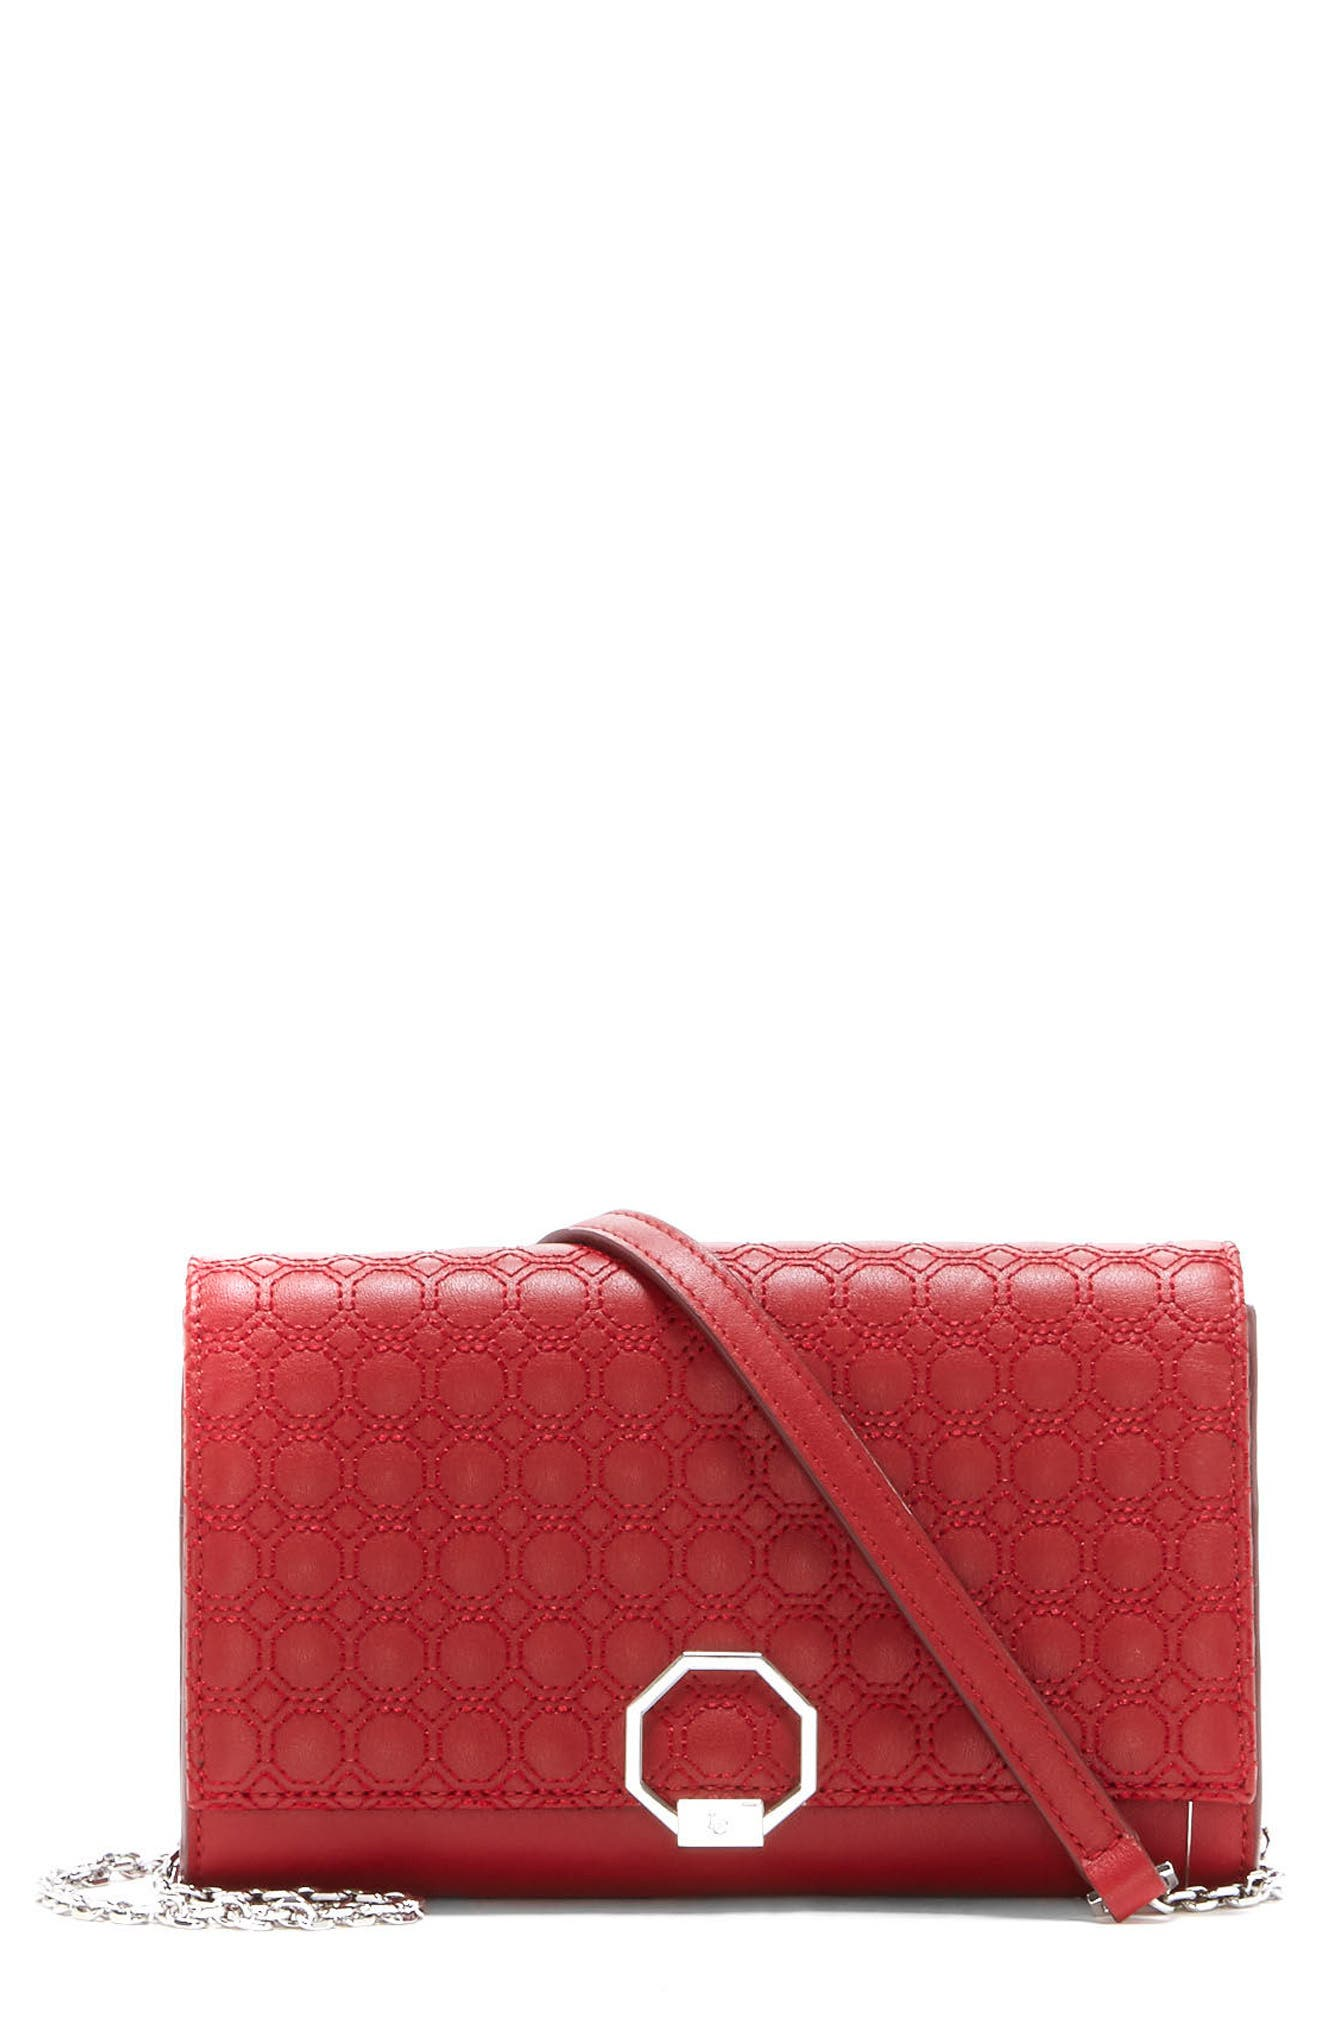 Alternate Image 1 Selected - Louise et Cie Celya Small Crossbody Bag